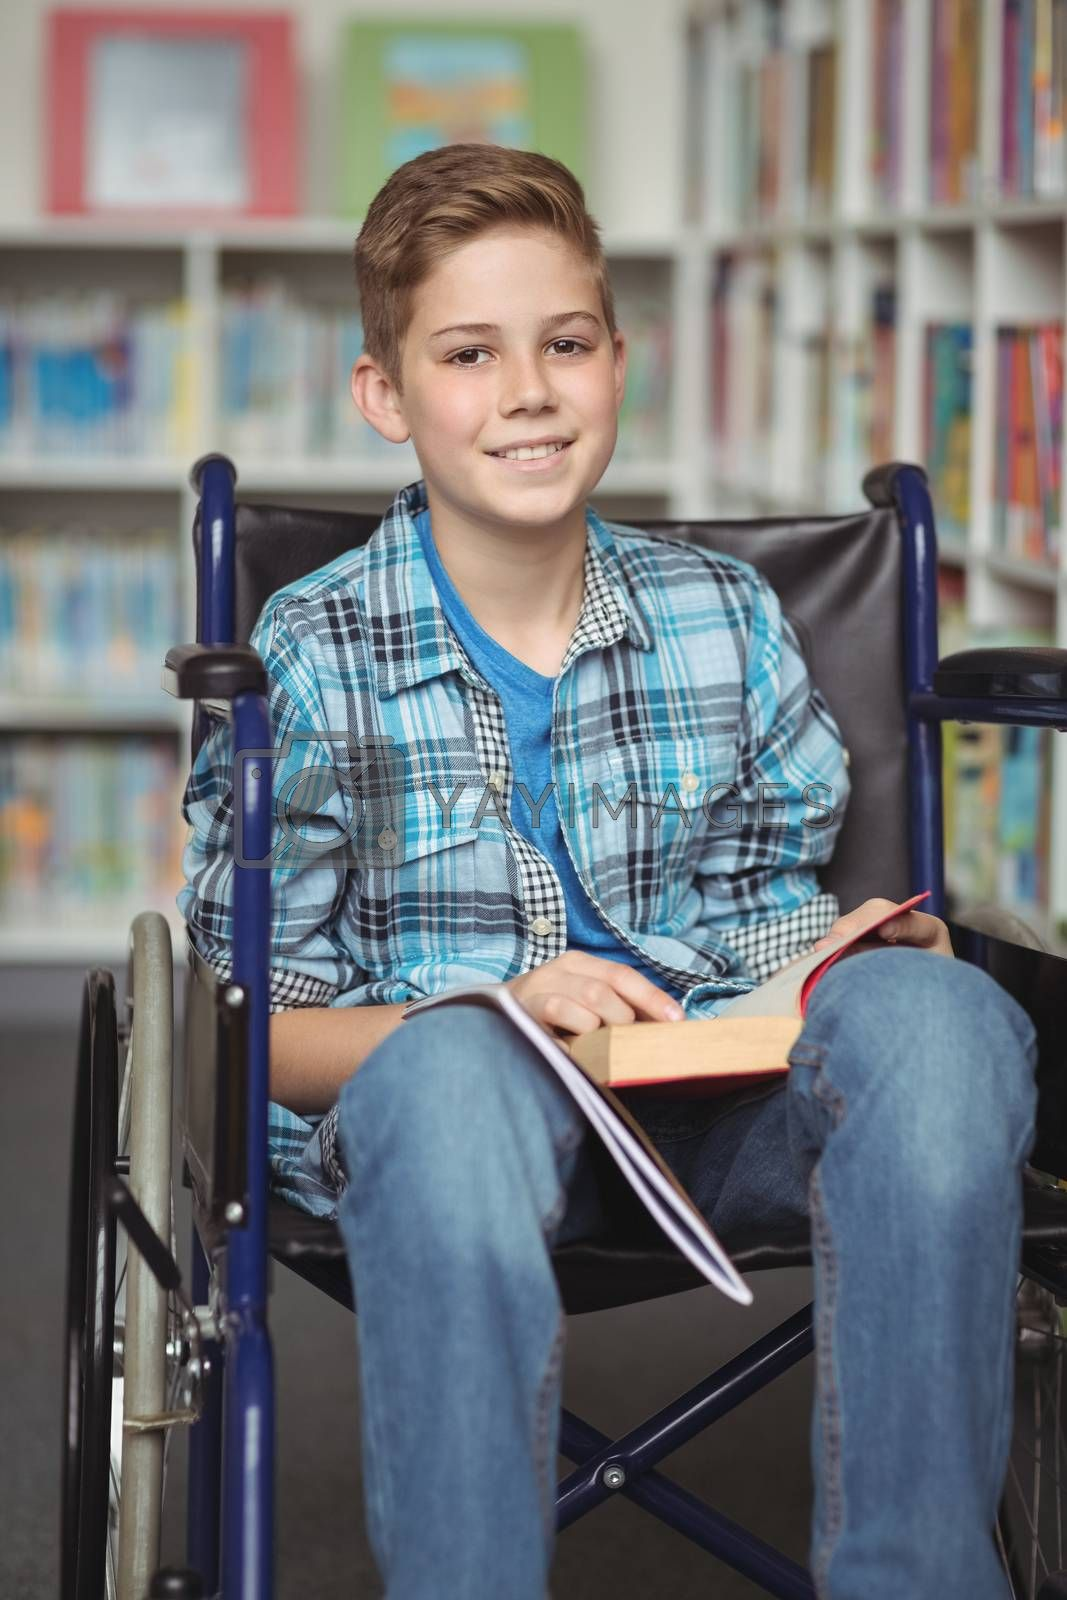 Portrait of disabled schoolboy holding book in library at school